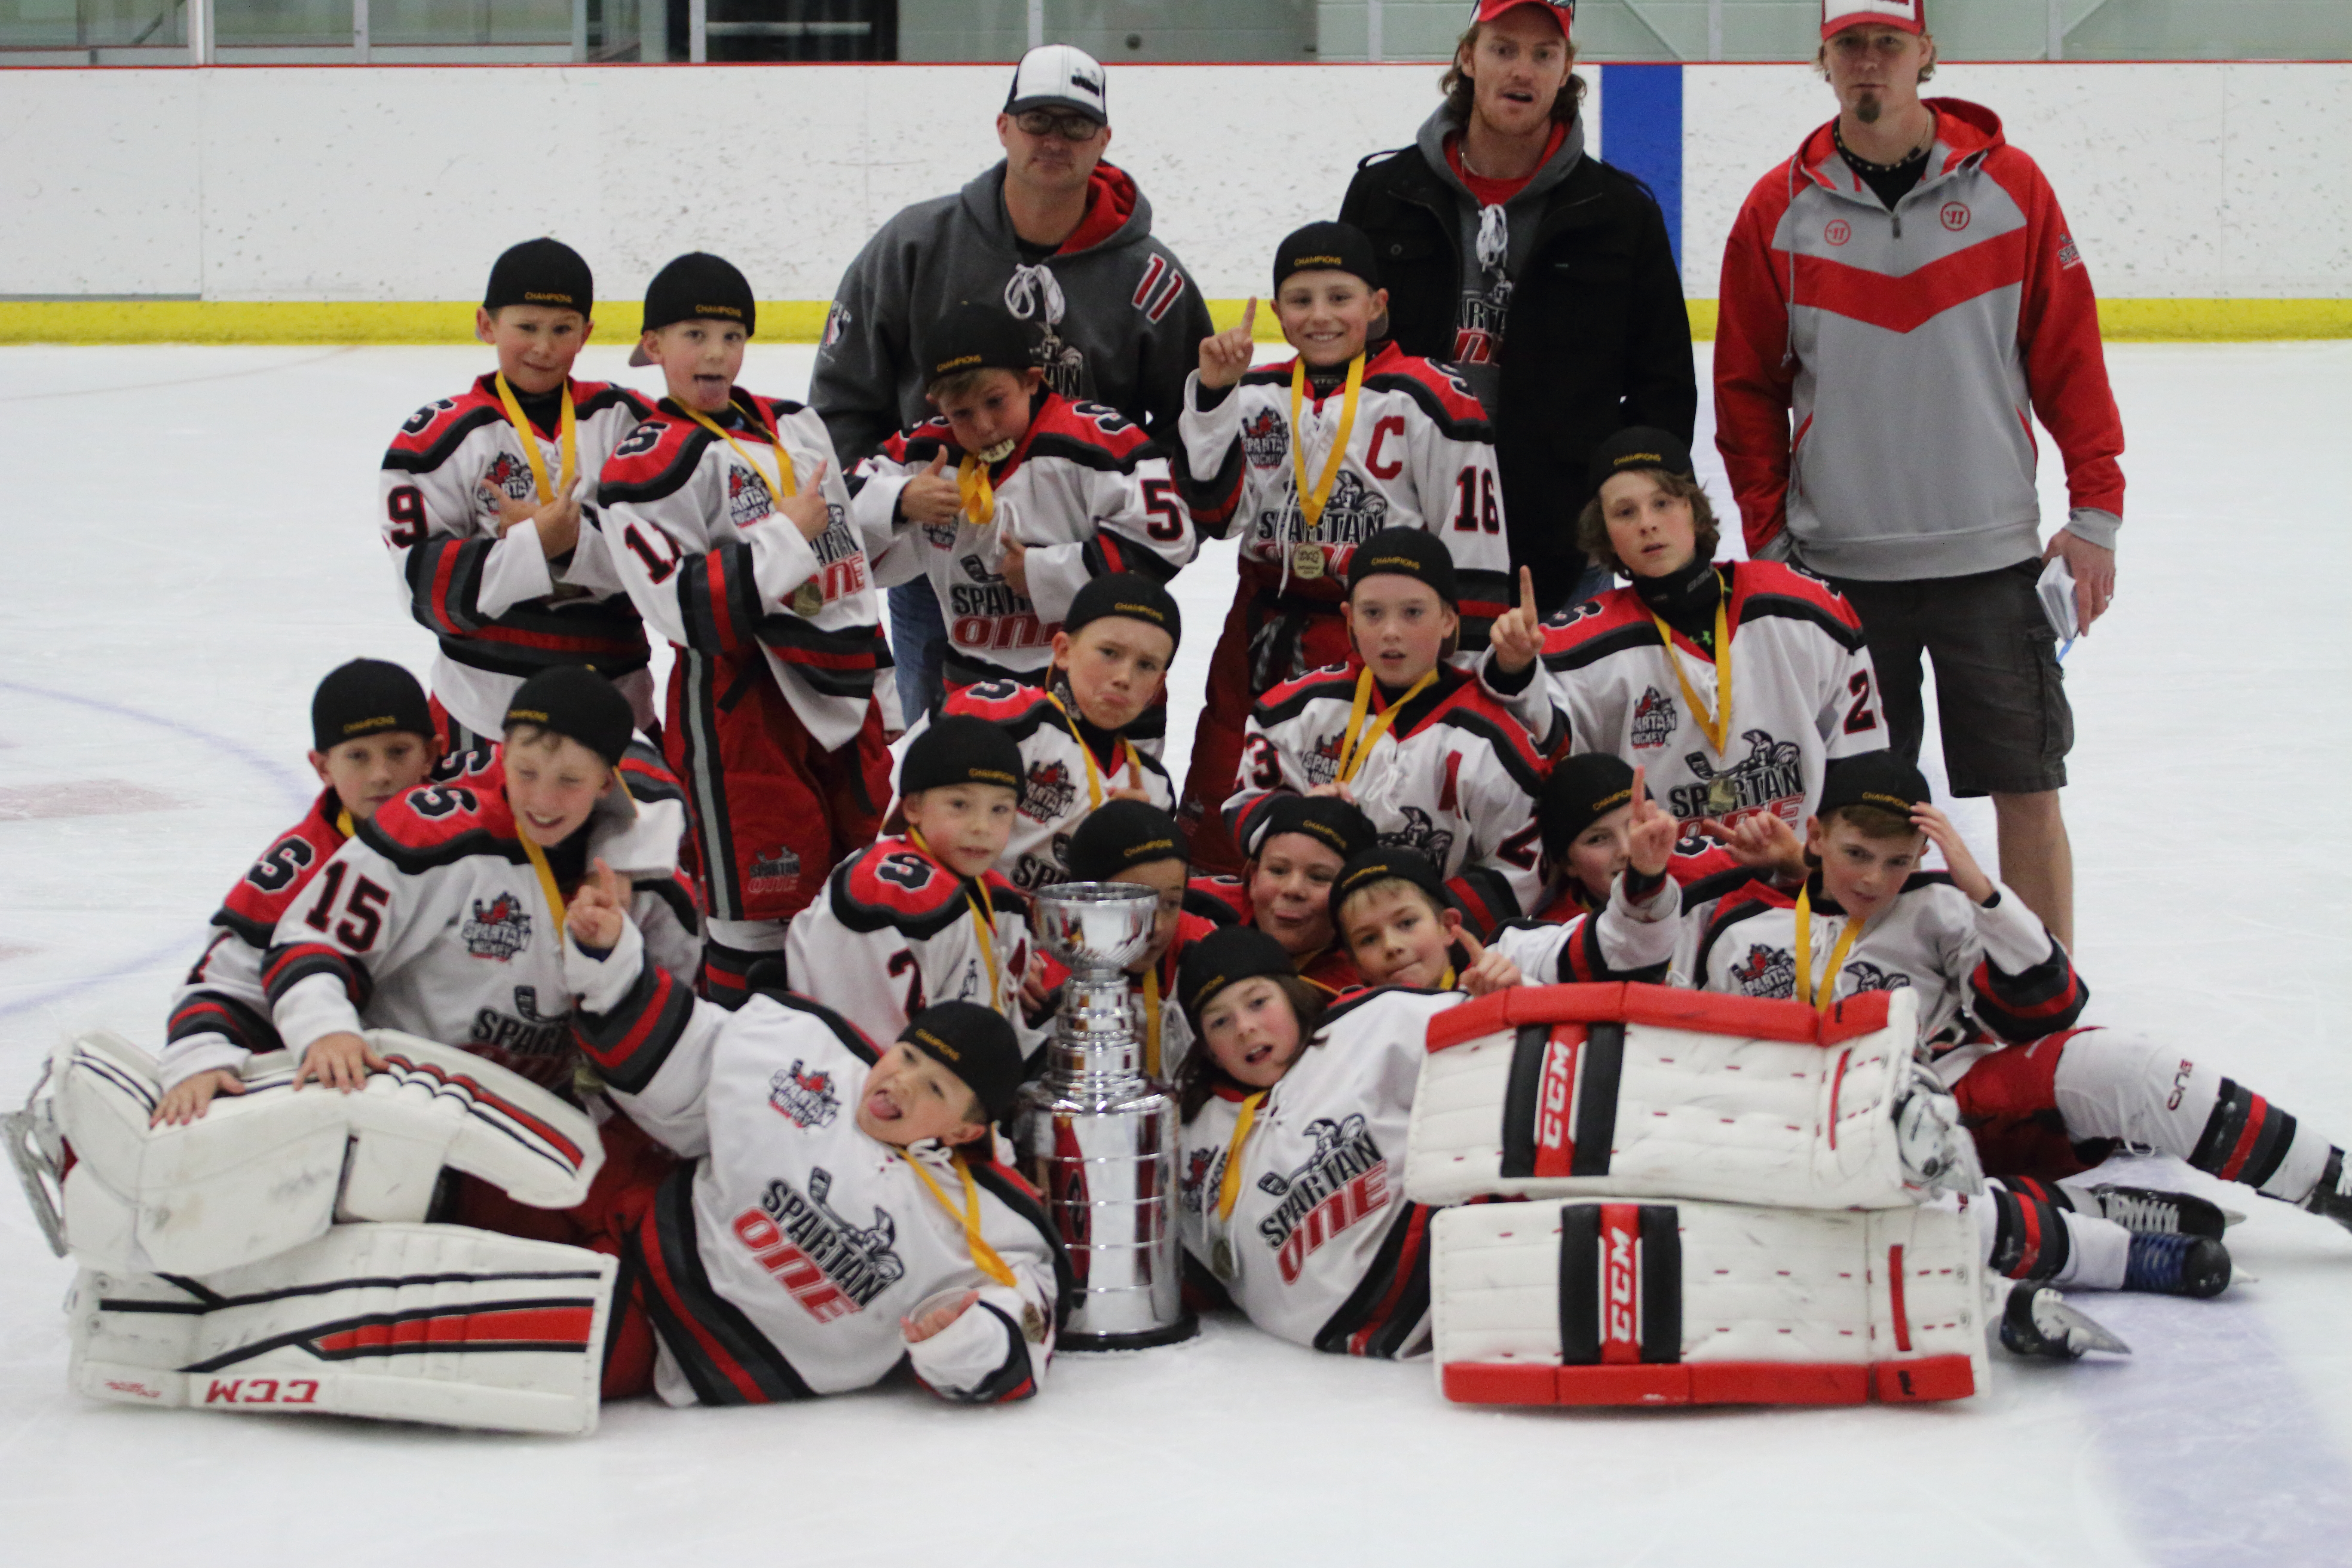 2006 Gold Division Champions 2016 - Spartans